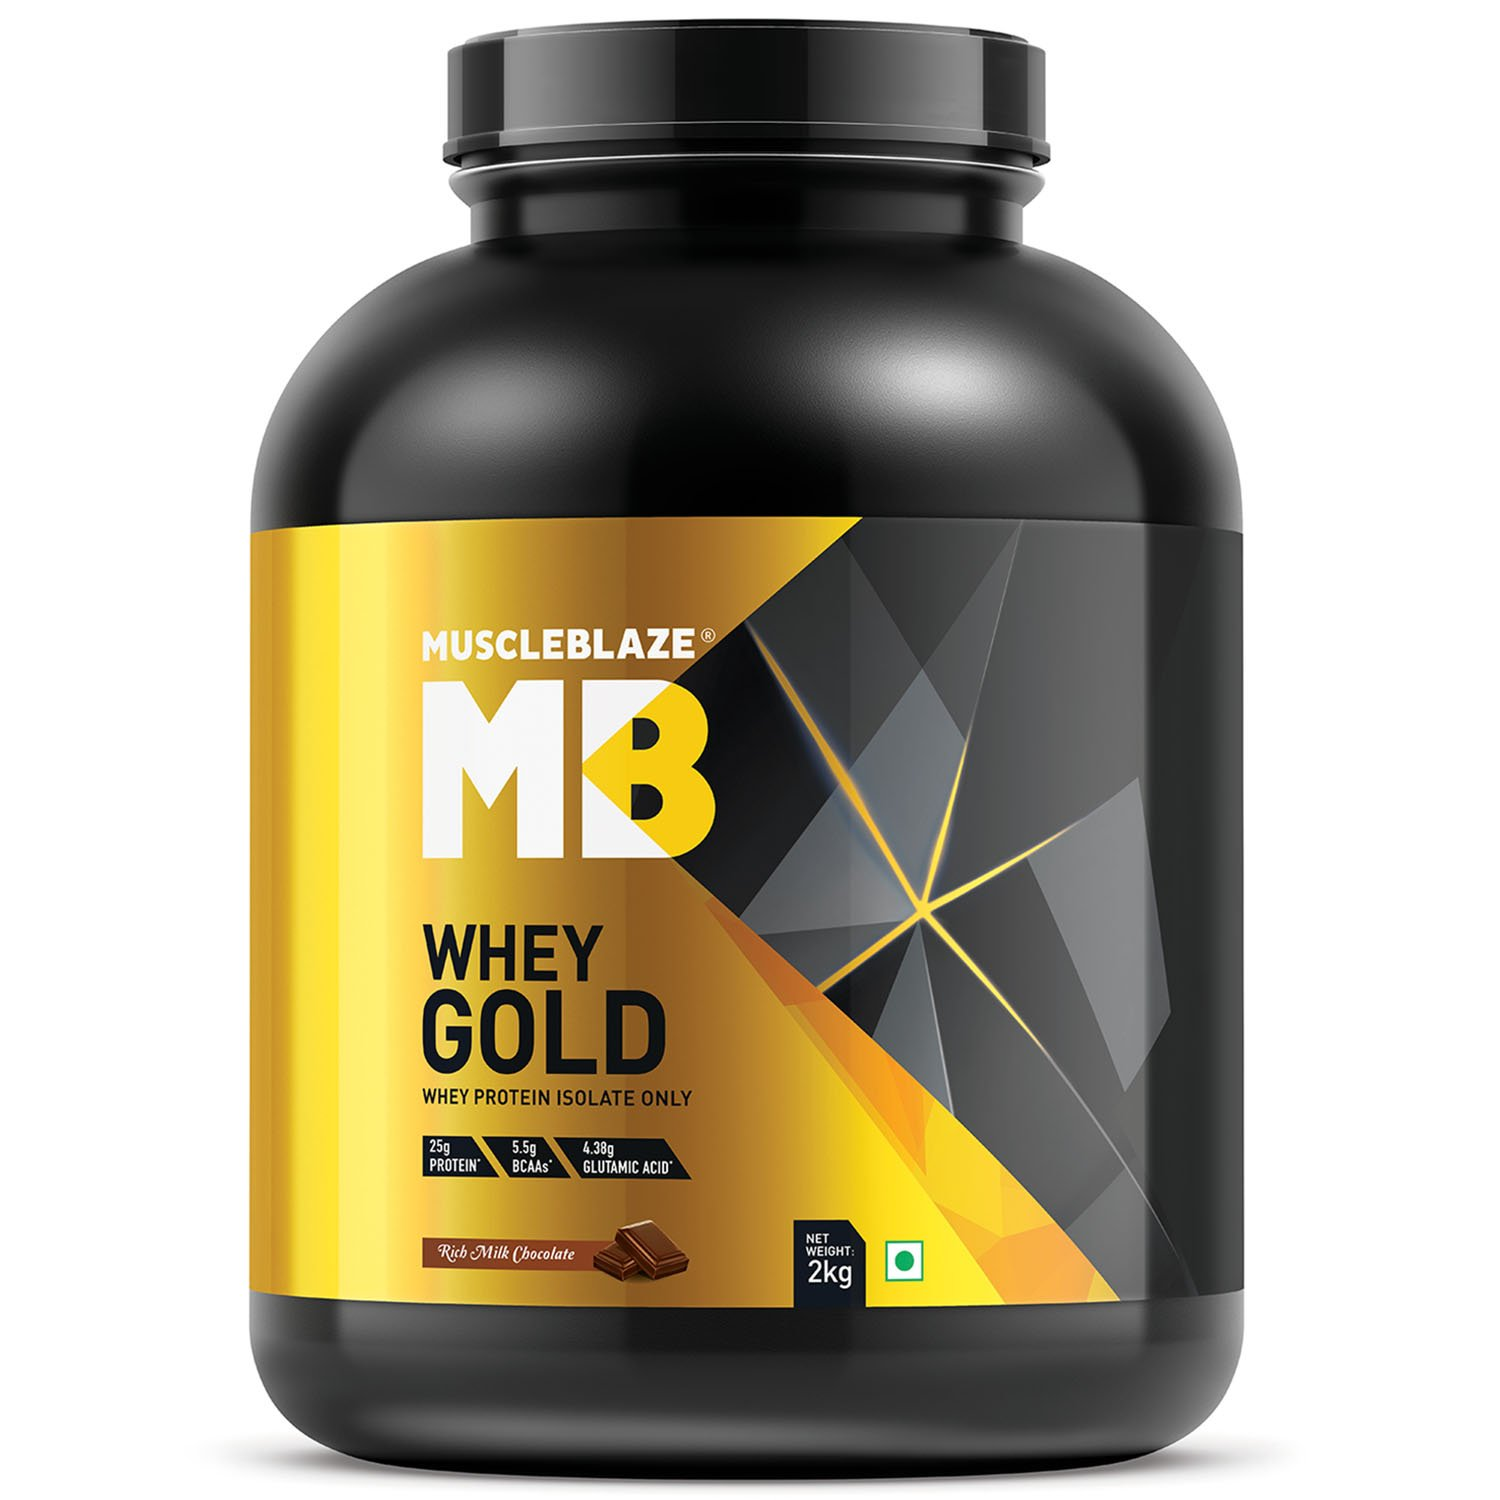 MuscleBlaze Whey Gold 100% Whey Protein Isolate (Rich Milk